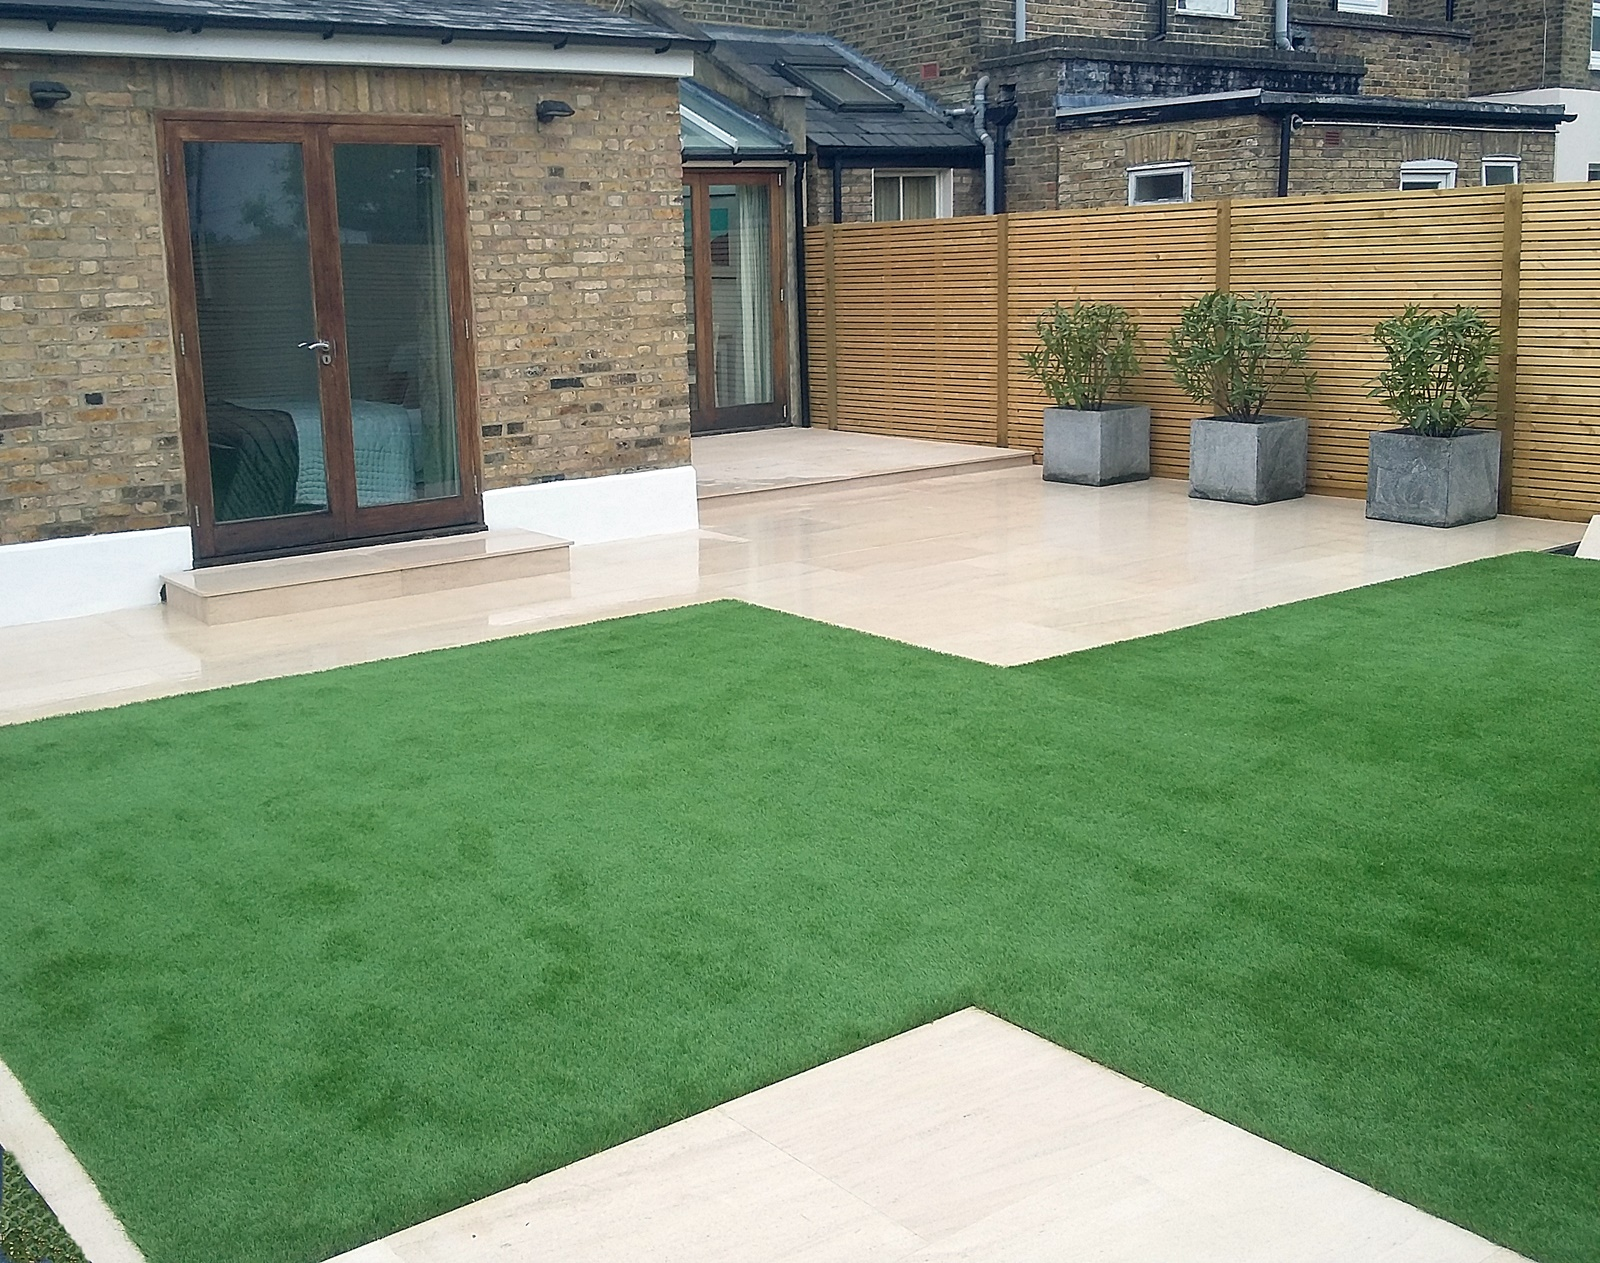 London garden blog london garden blog gardens from for Paving garden designs